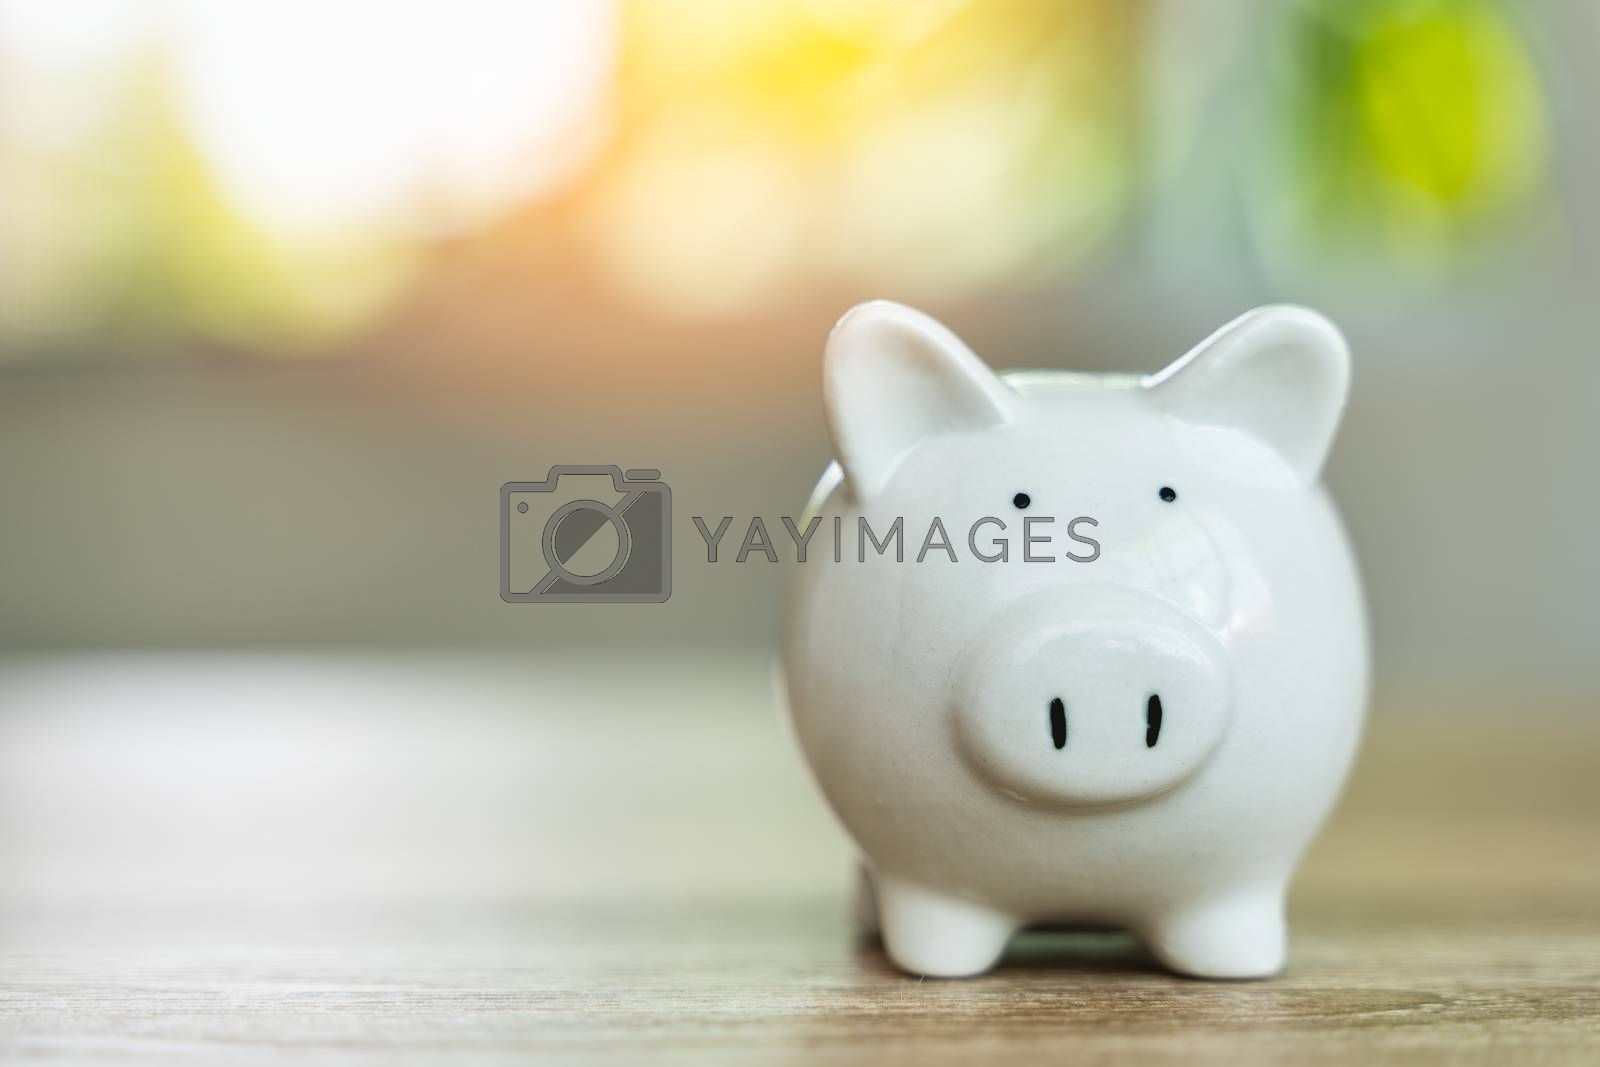 Money savings concepts Piggy bank symbol of saving money on wooden table with sunlight bokeh blur background and copy space